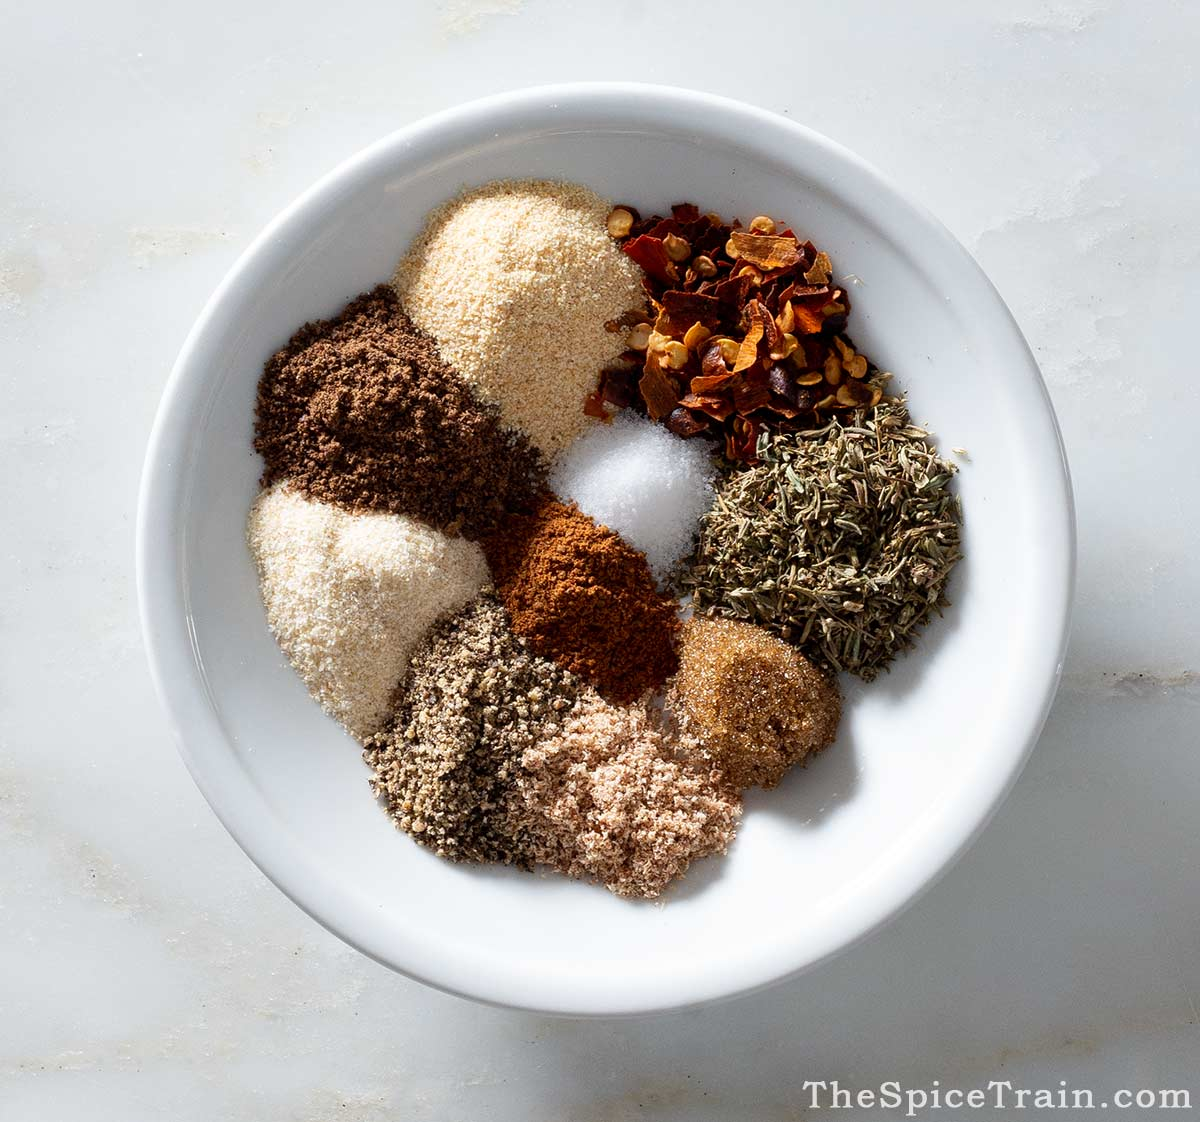 Jamaican jerk seasoning spices on a plate.